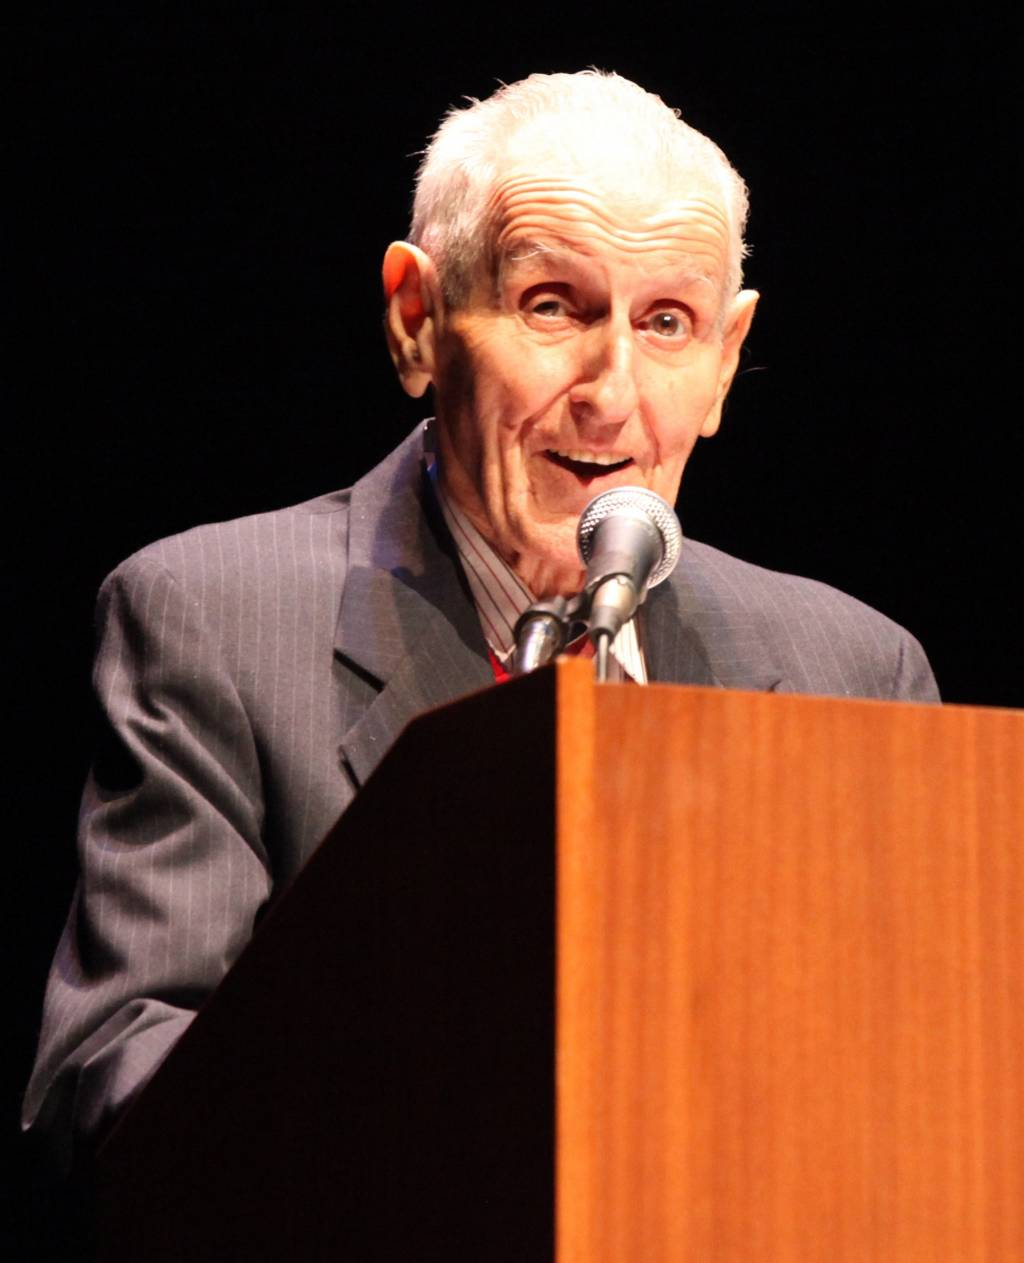 an analysis of jack kevorkian aspects of physician assisted suicide Jack kevorkian attended the university of michigan and in 1952 graduated from  the  to the medical profession about its need to confront troubling ethical issues  physician-assisted suicide, legalized in the netherlands in february 1993, was.